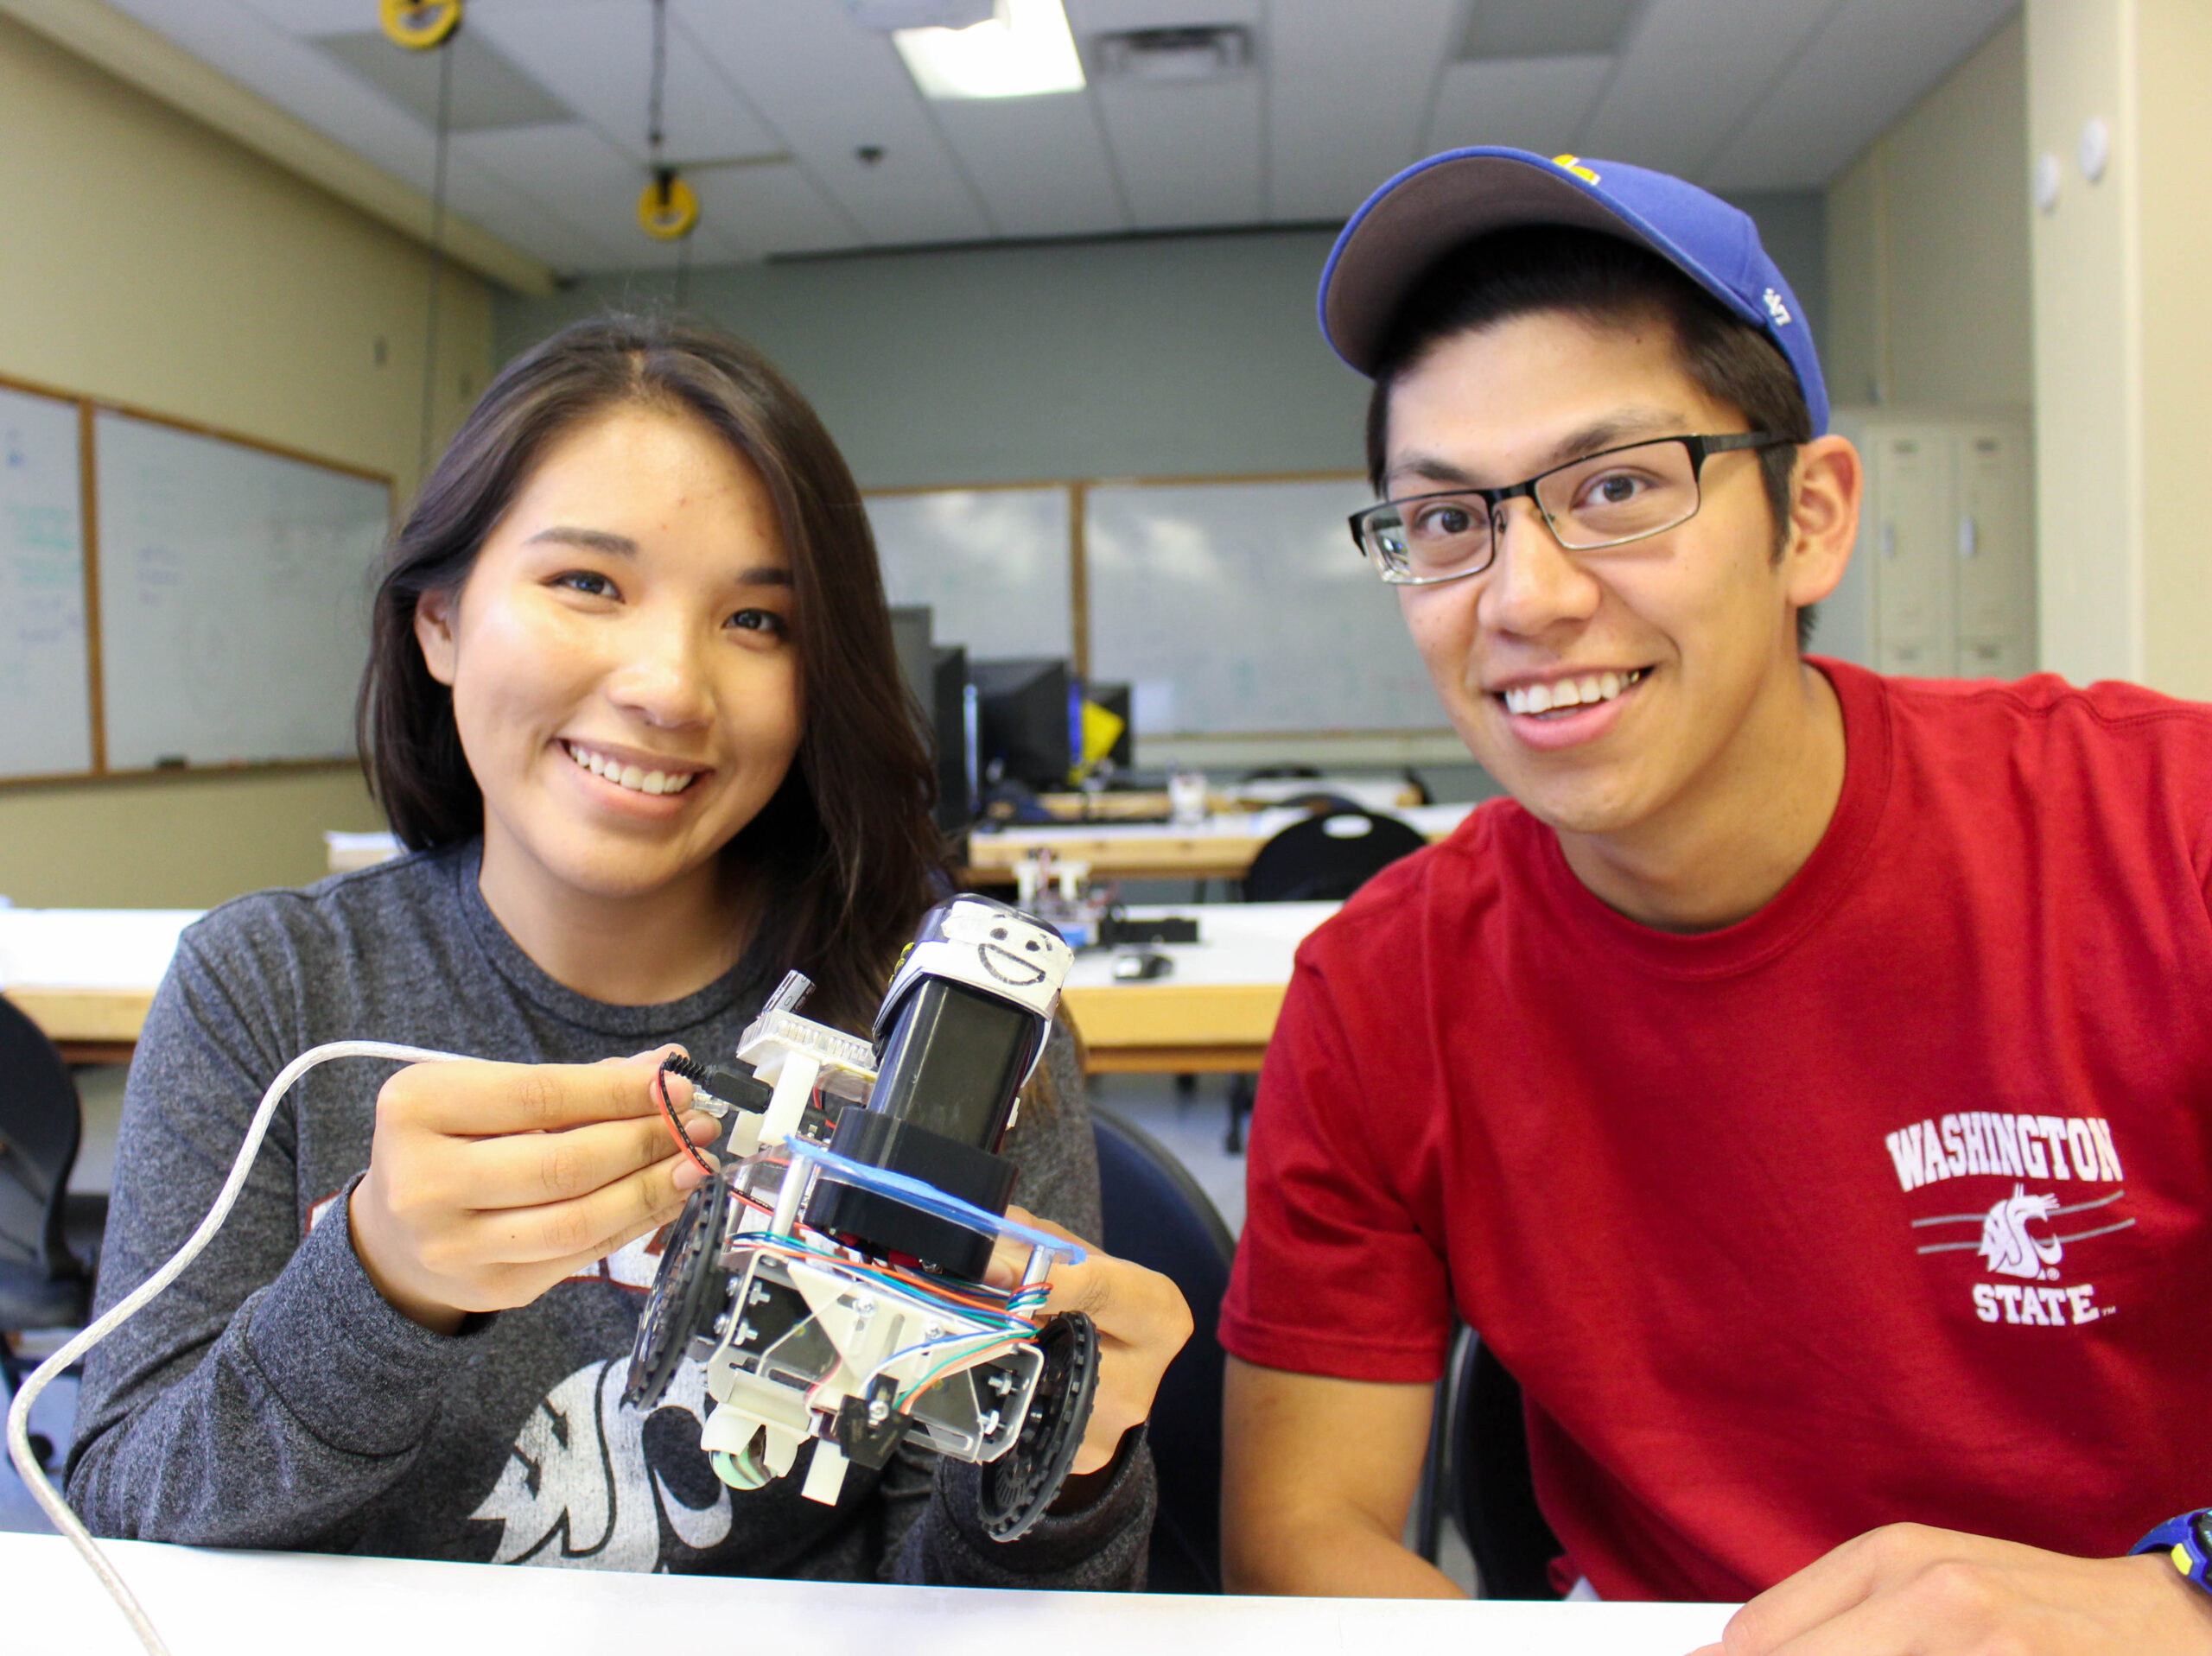 Students working on a small robot in the Frank Innovation Zone.